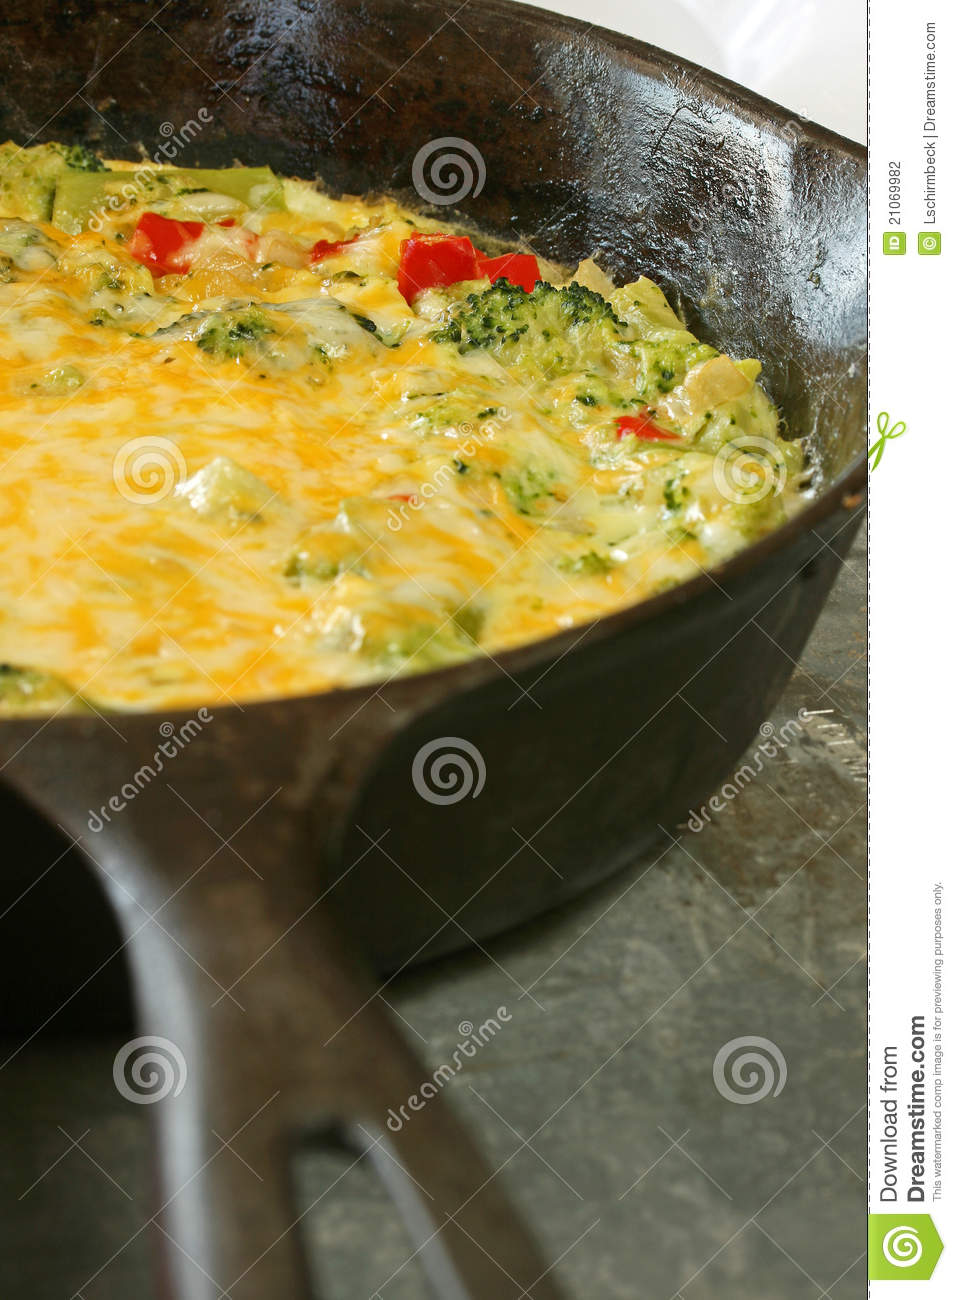 Skillet of broccoli cheese frittata with red peppers and cheese.